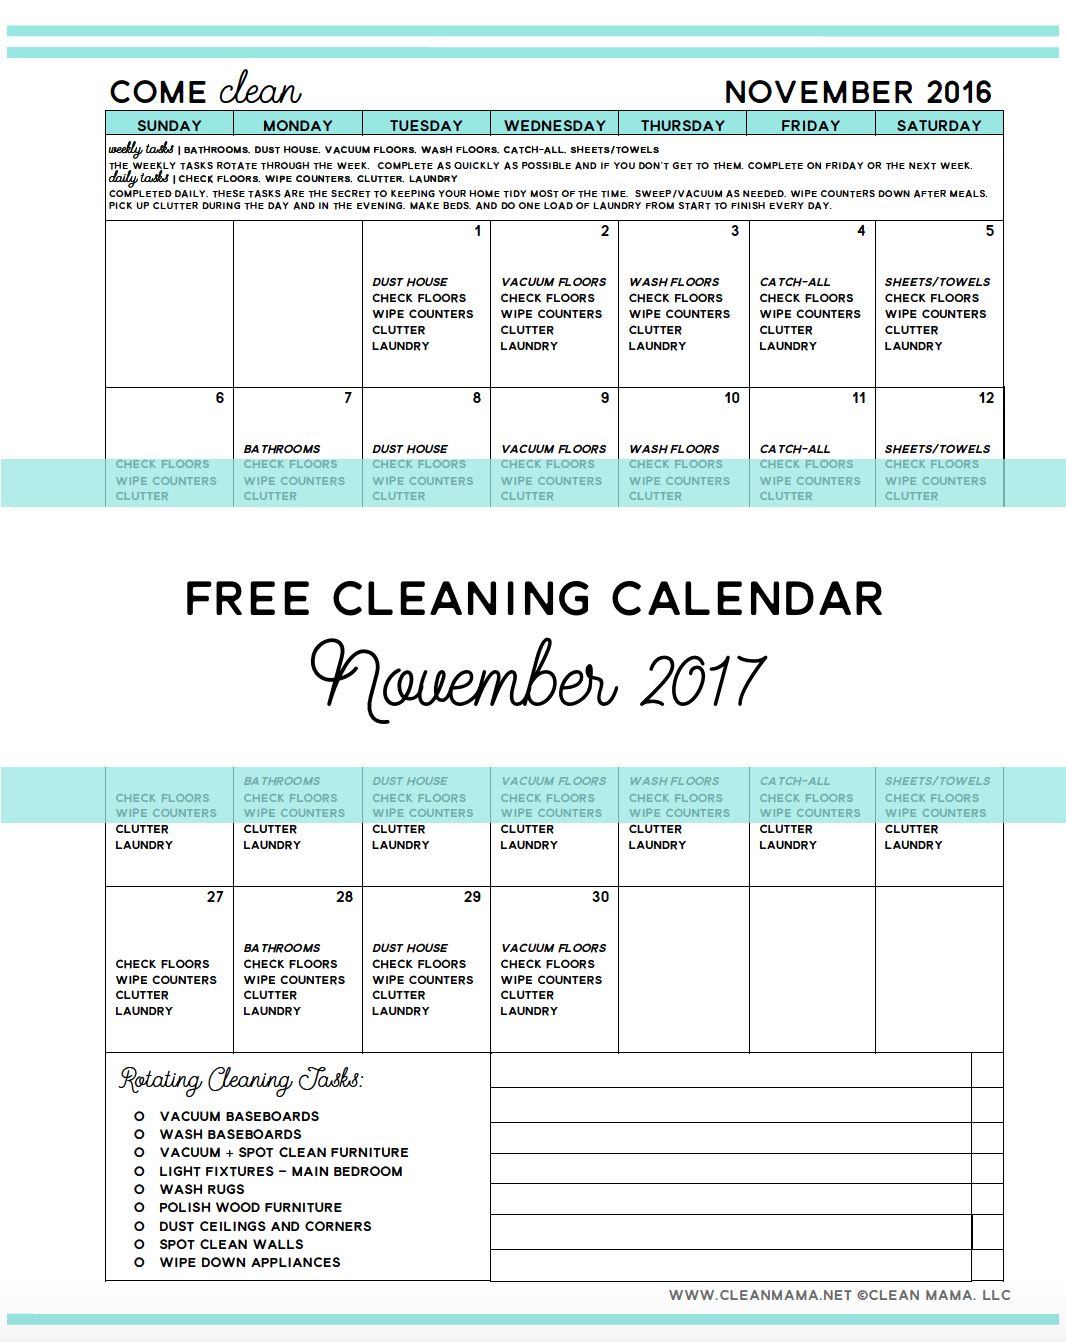 free-cleaning-calendar-november-2016-come-clean-clean-mama